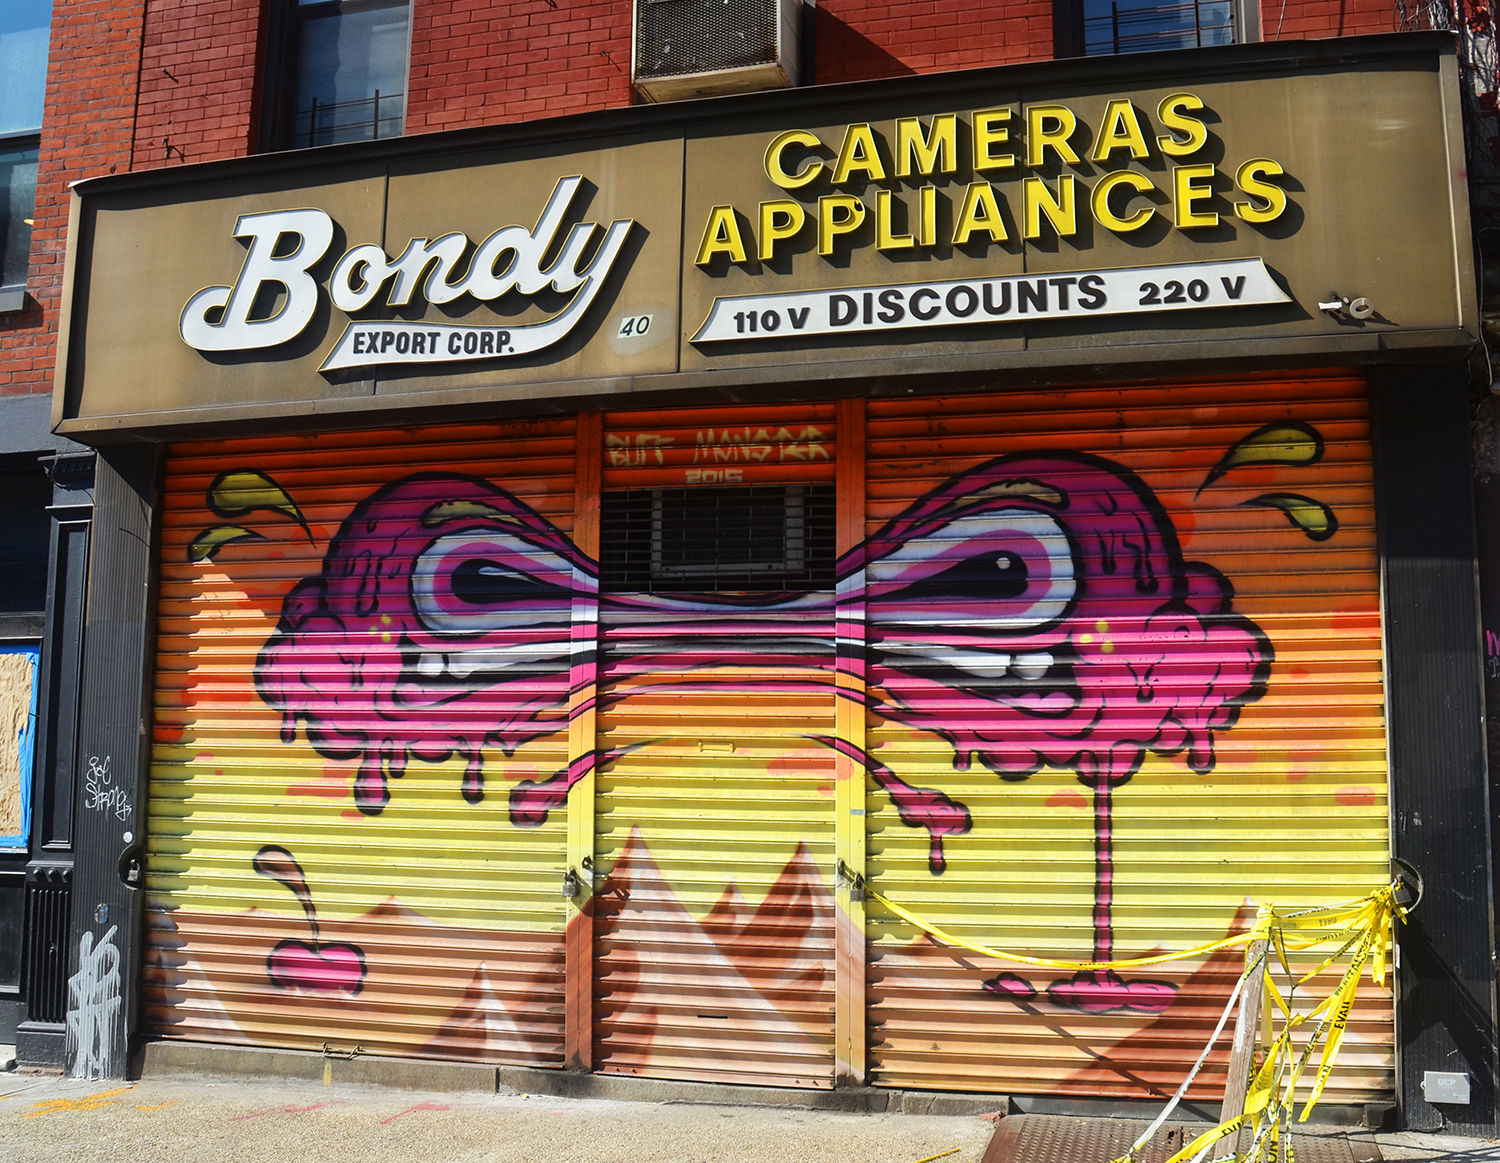 100 Gates - Bondy Export Corp at 40 Canal Street by Buff Monster